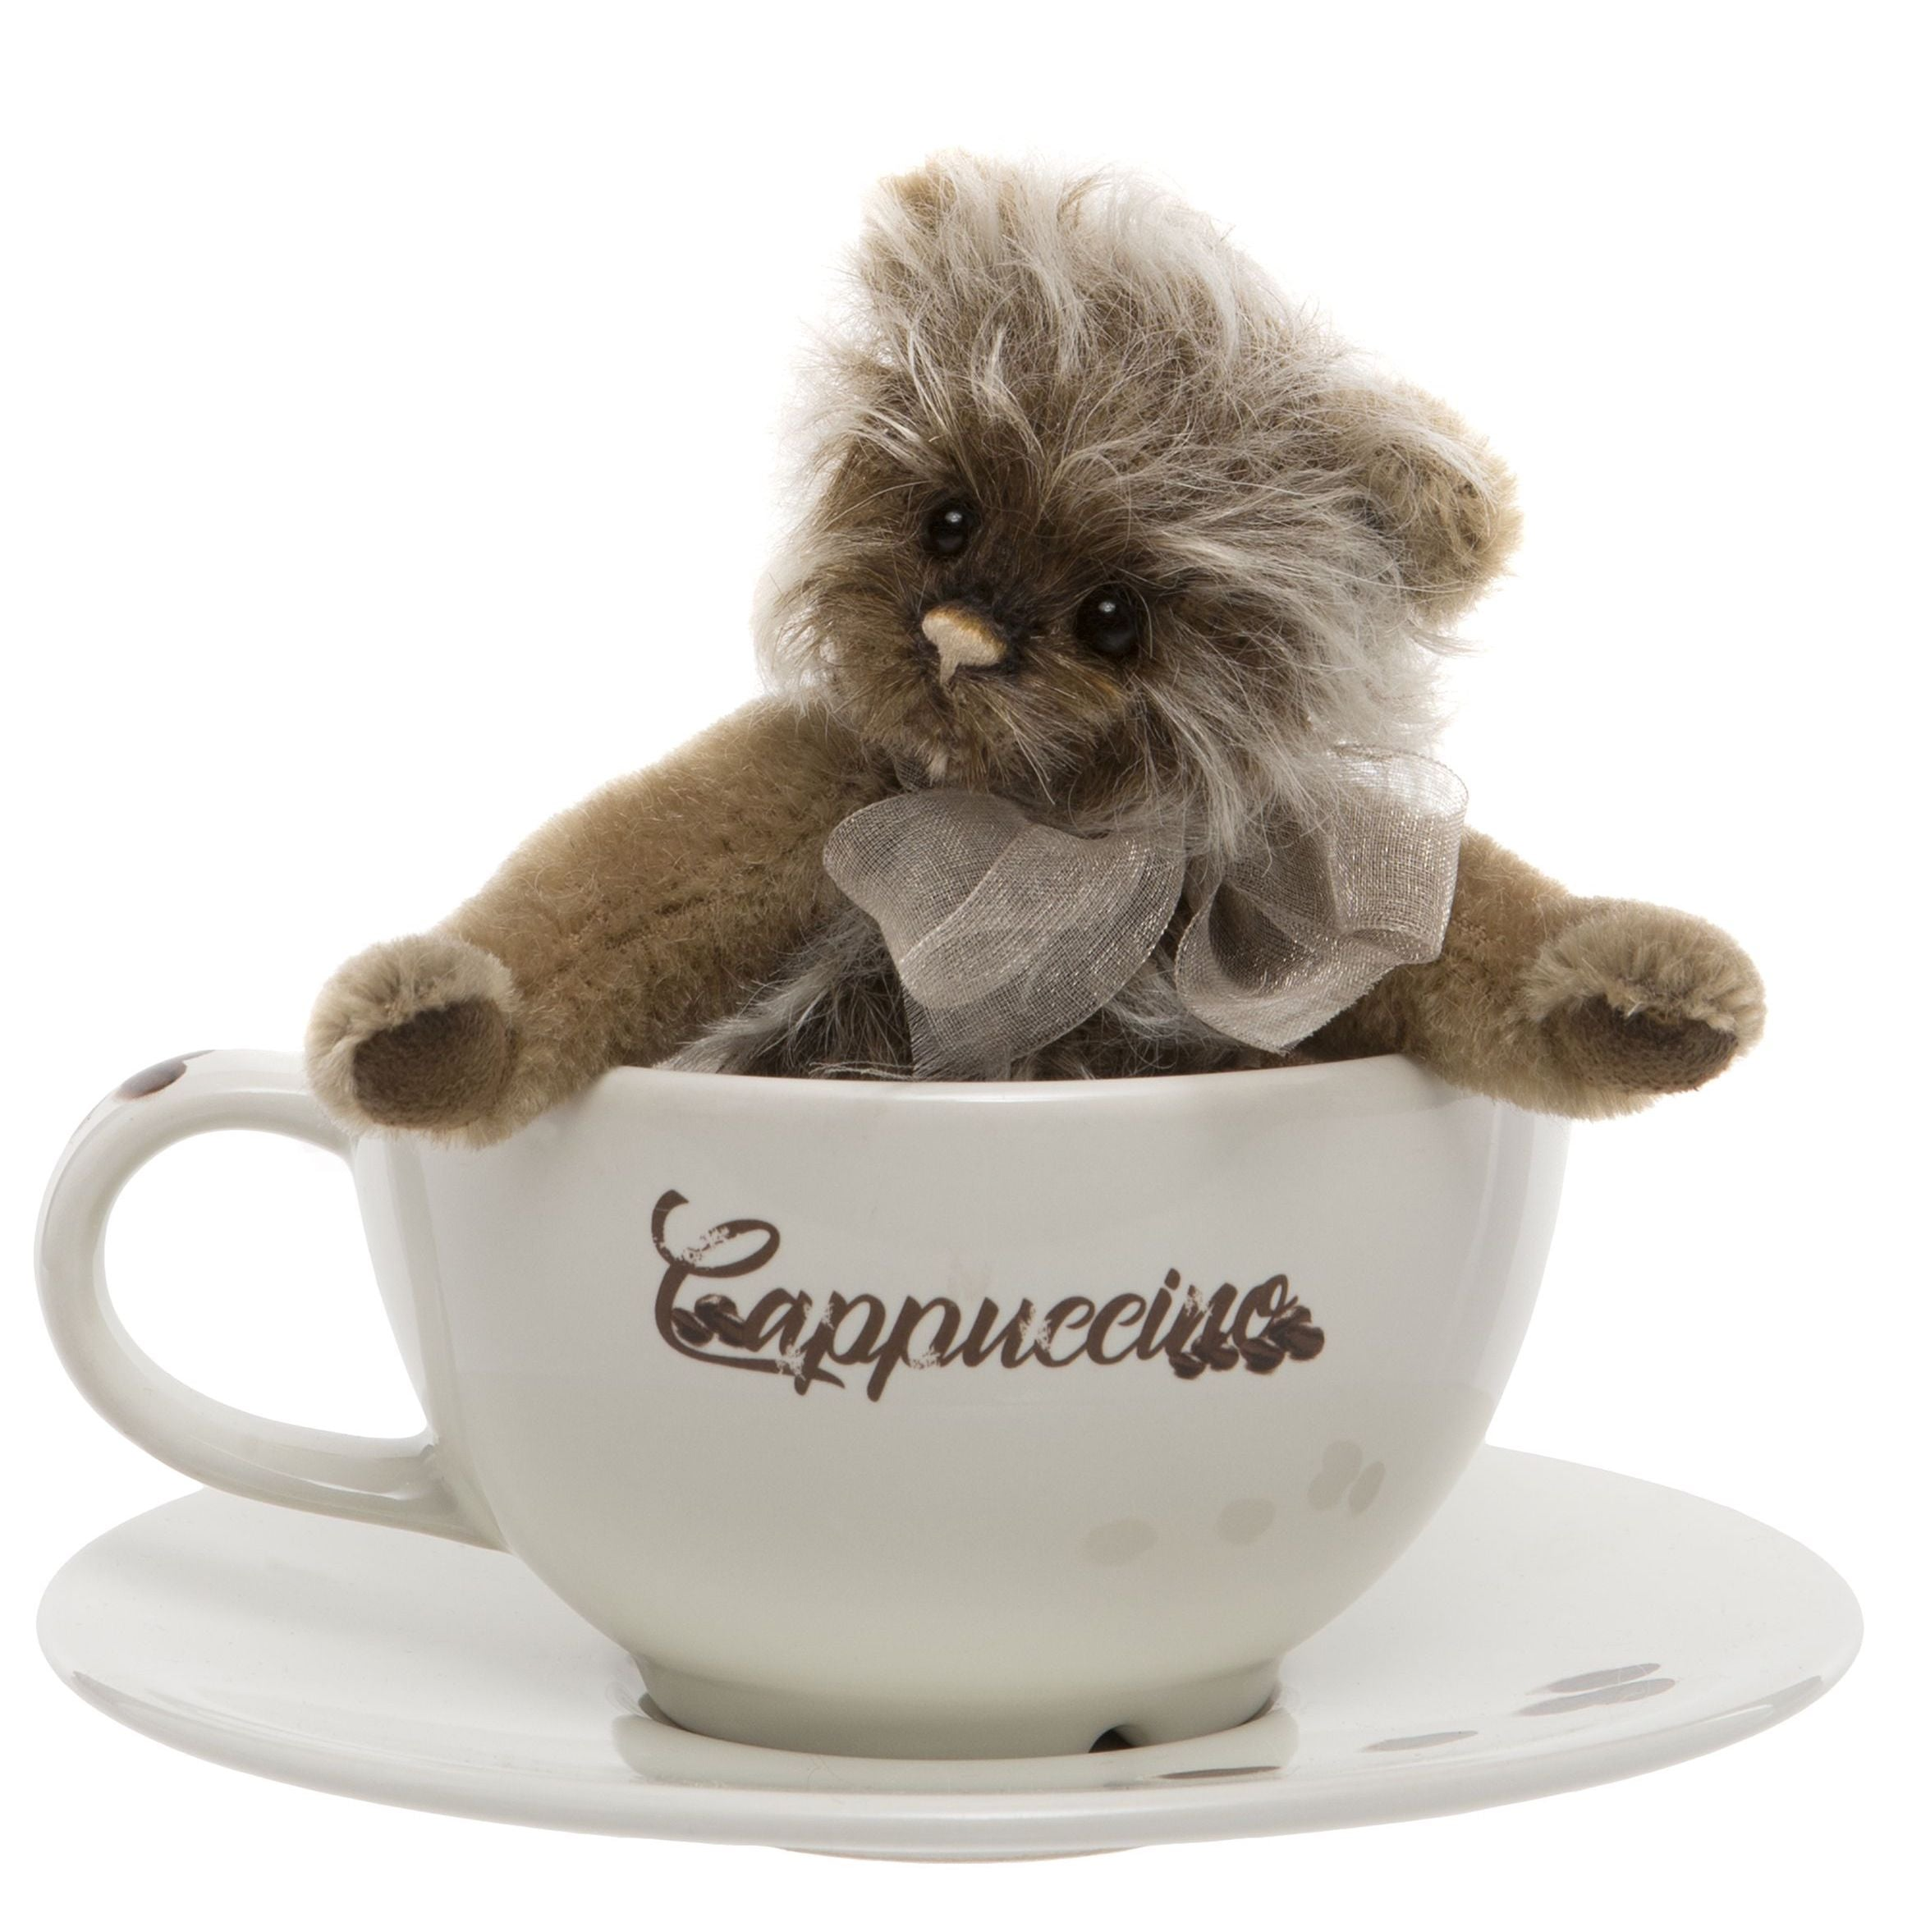 Charlie Bears Cappuccino Teddy Bear Cup and Saucer Gift Set